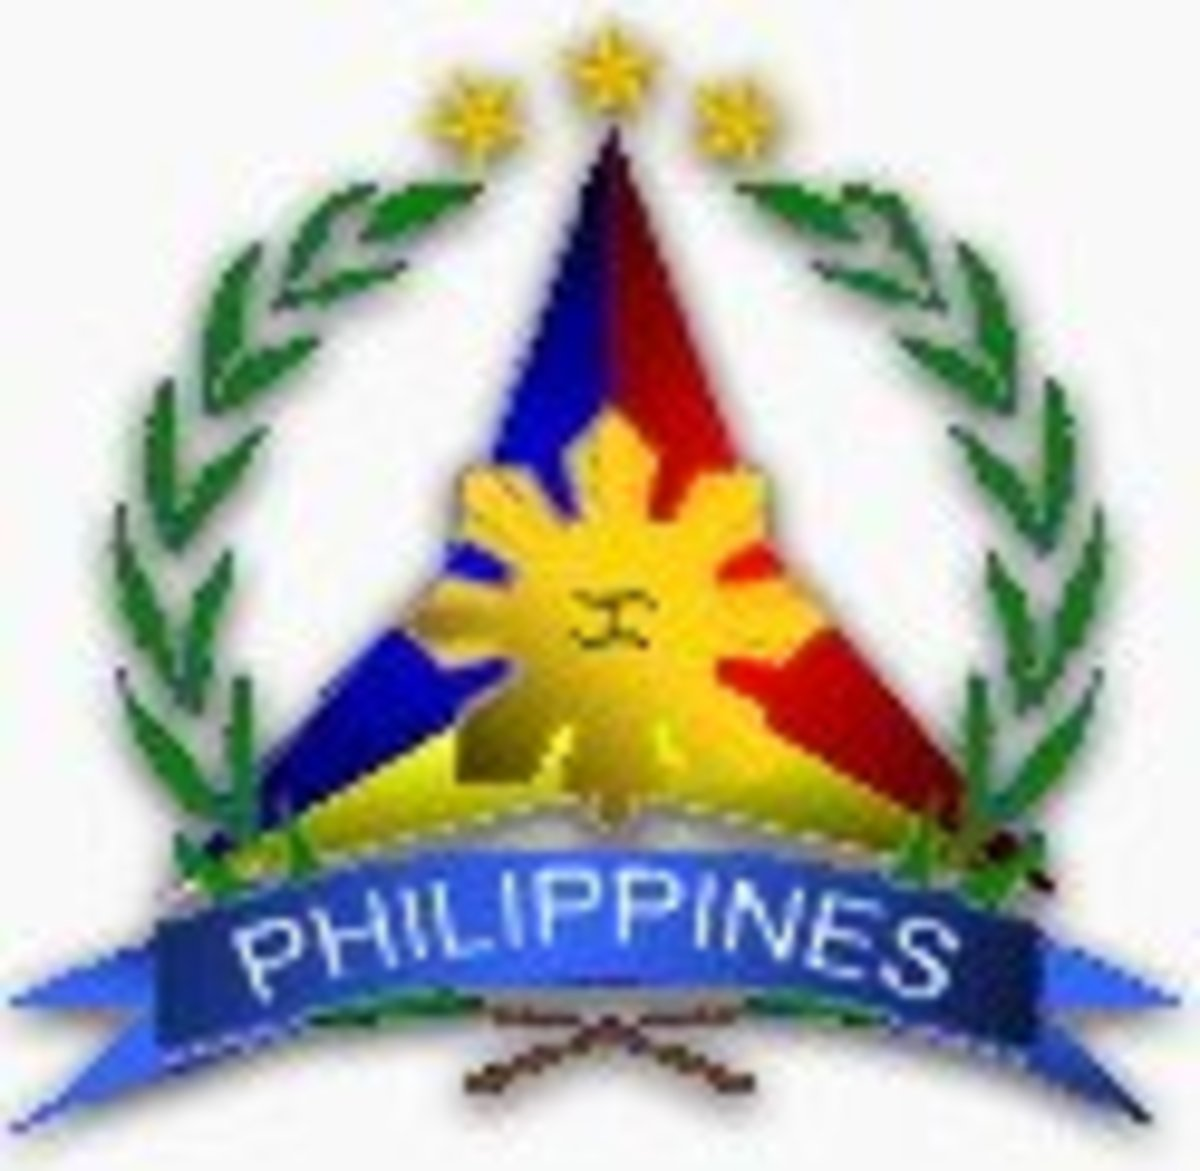 AFP Military Ranks | Philippine Navy, Philippine Air Force and Philippine Army Ranks and Insignias